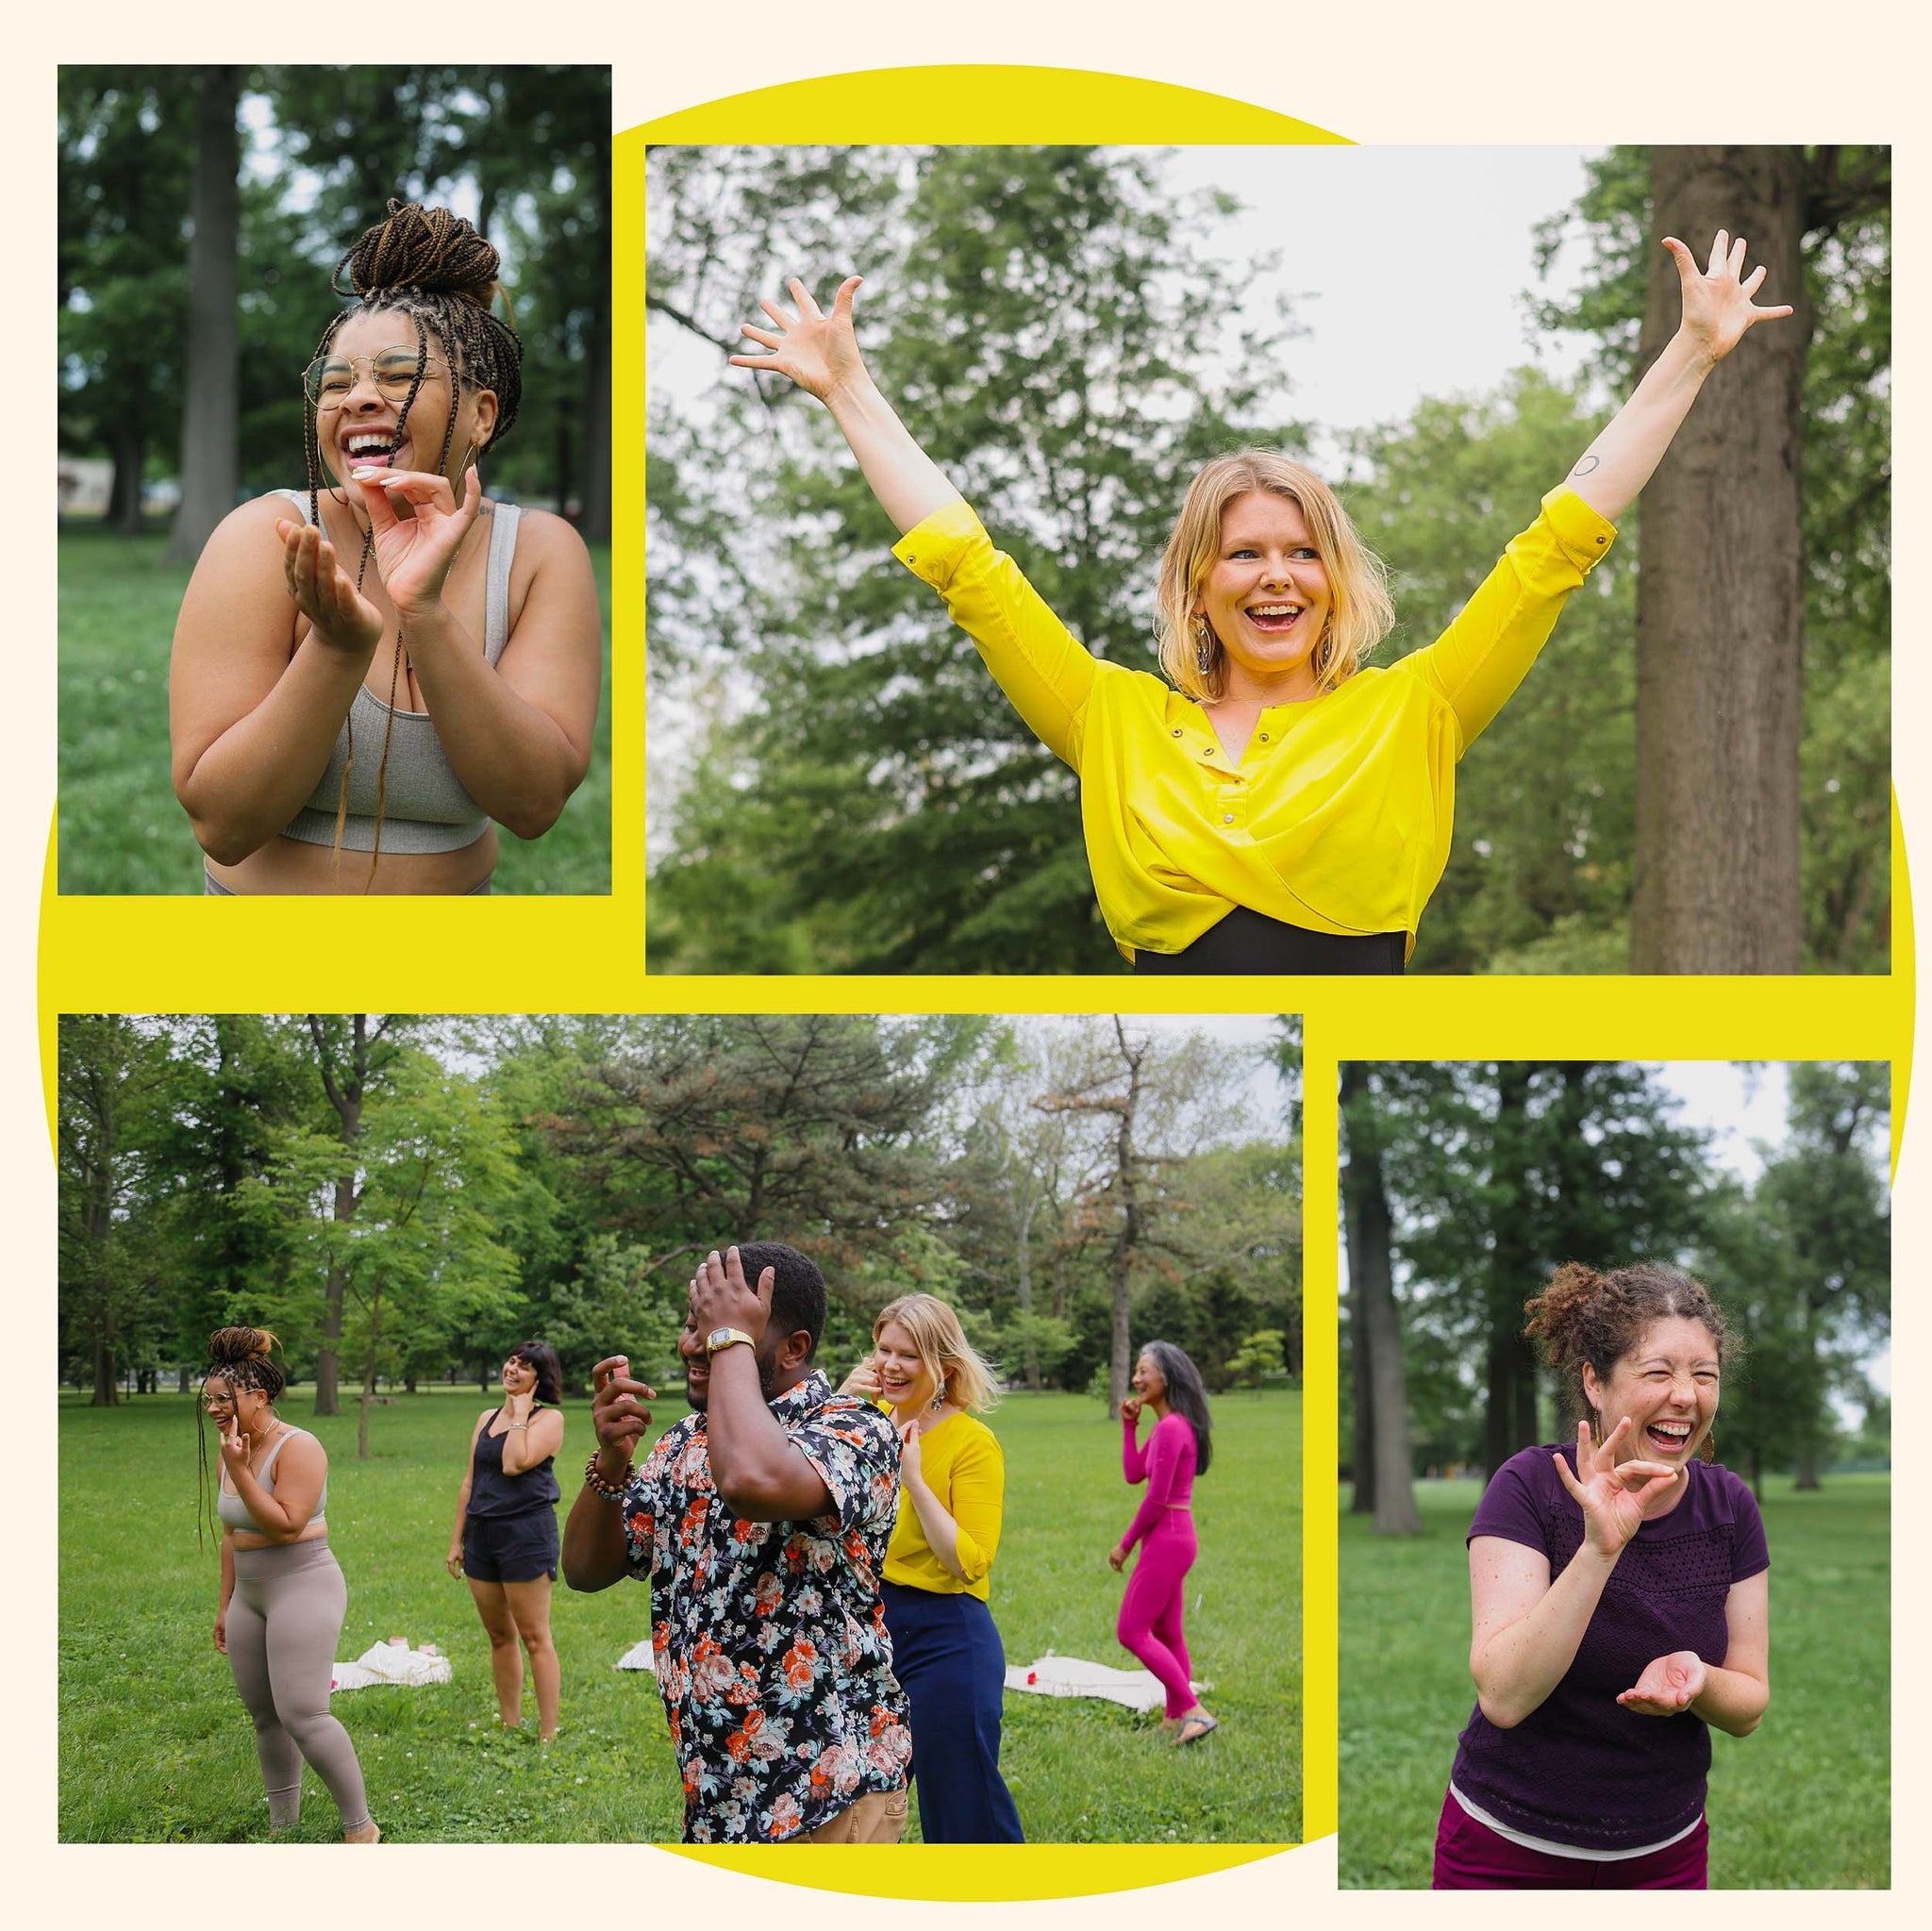 Image of people standing and smiles on their faces doing laughing yoga.